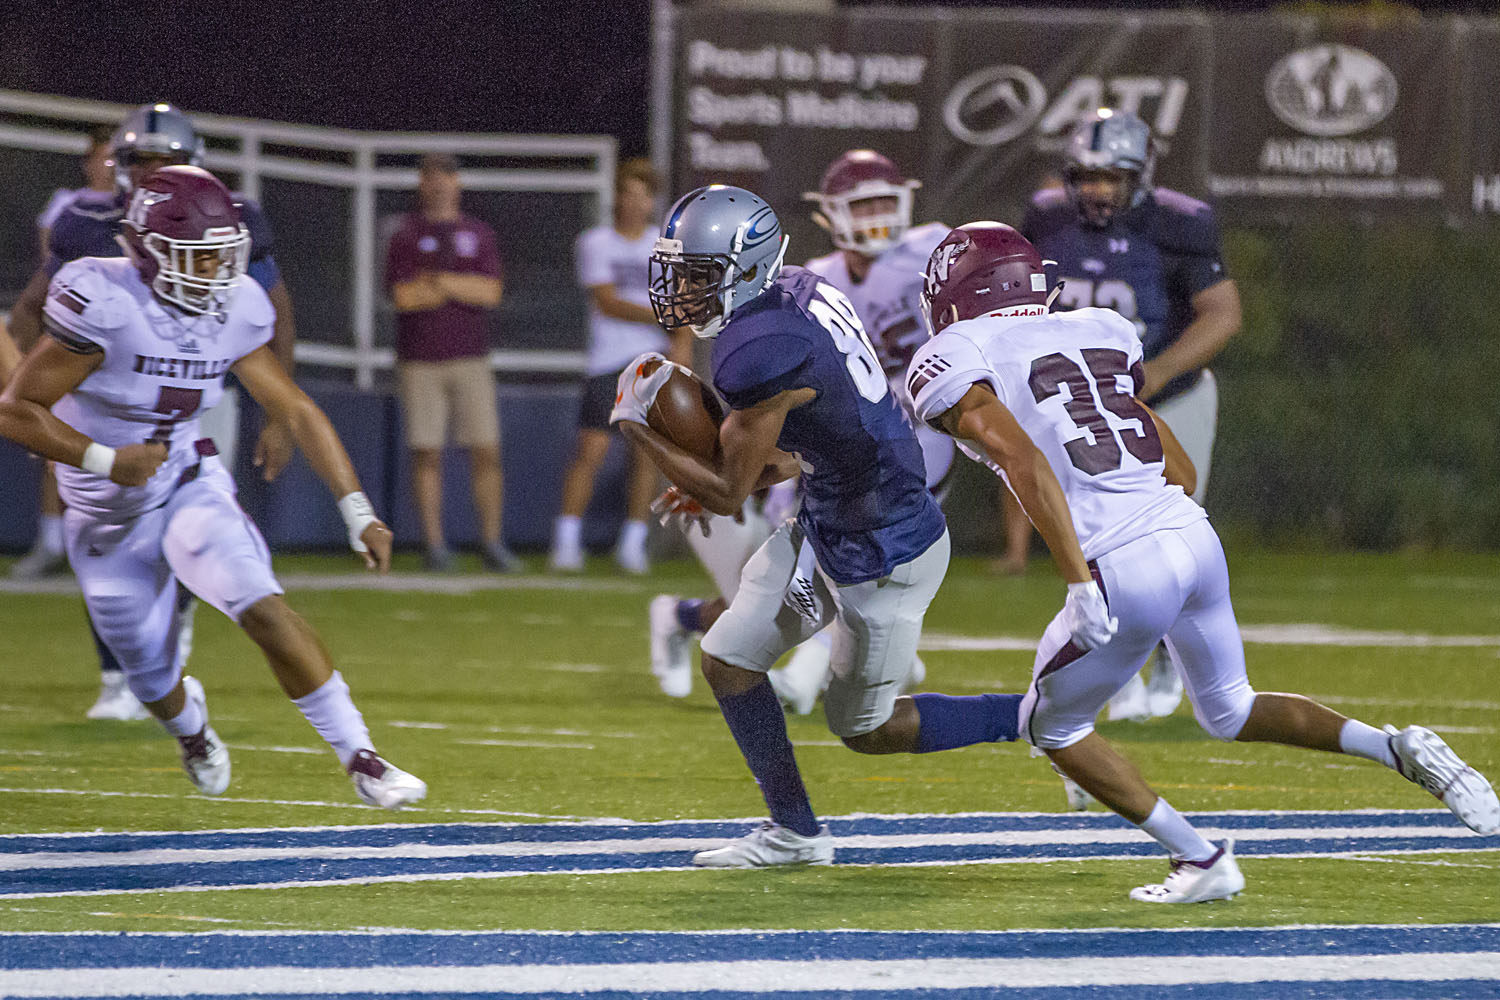 Cougars dominate in 56-14 victory